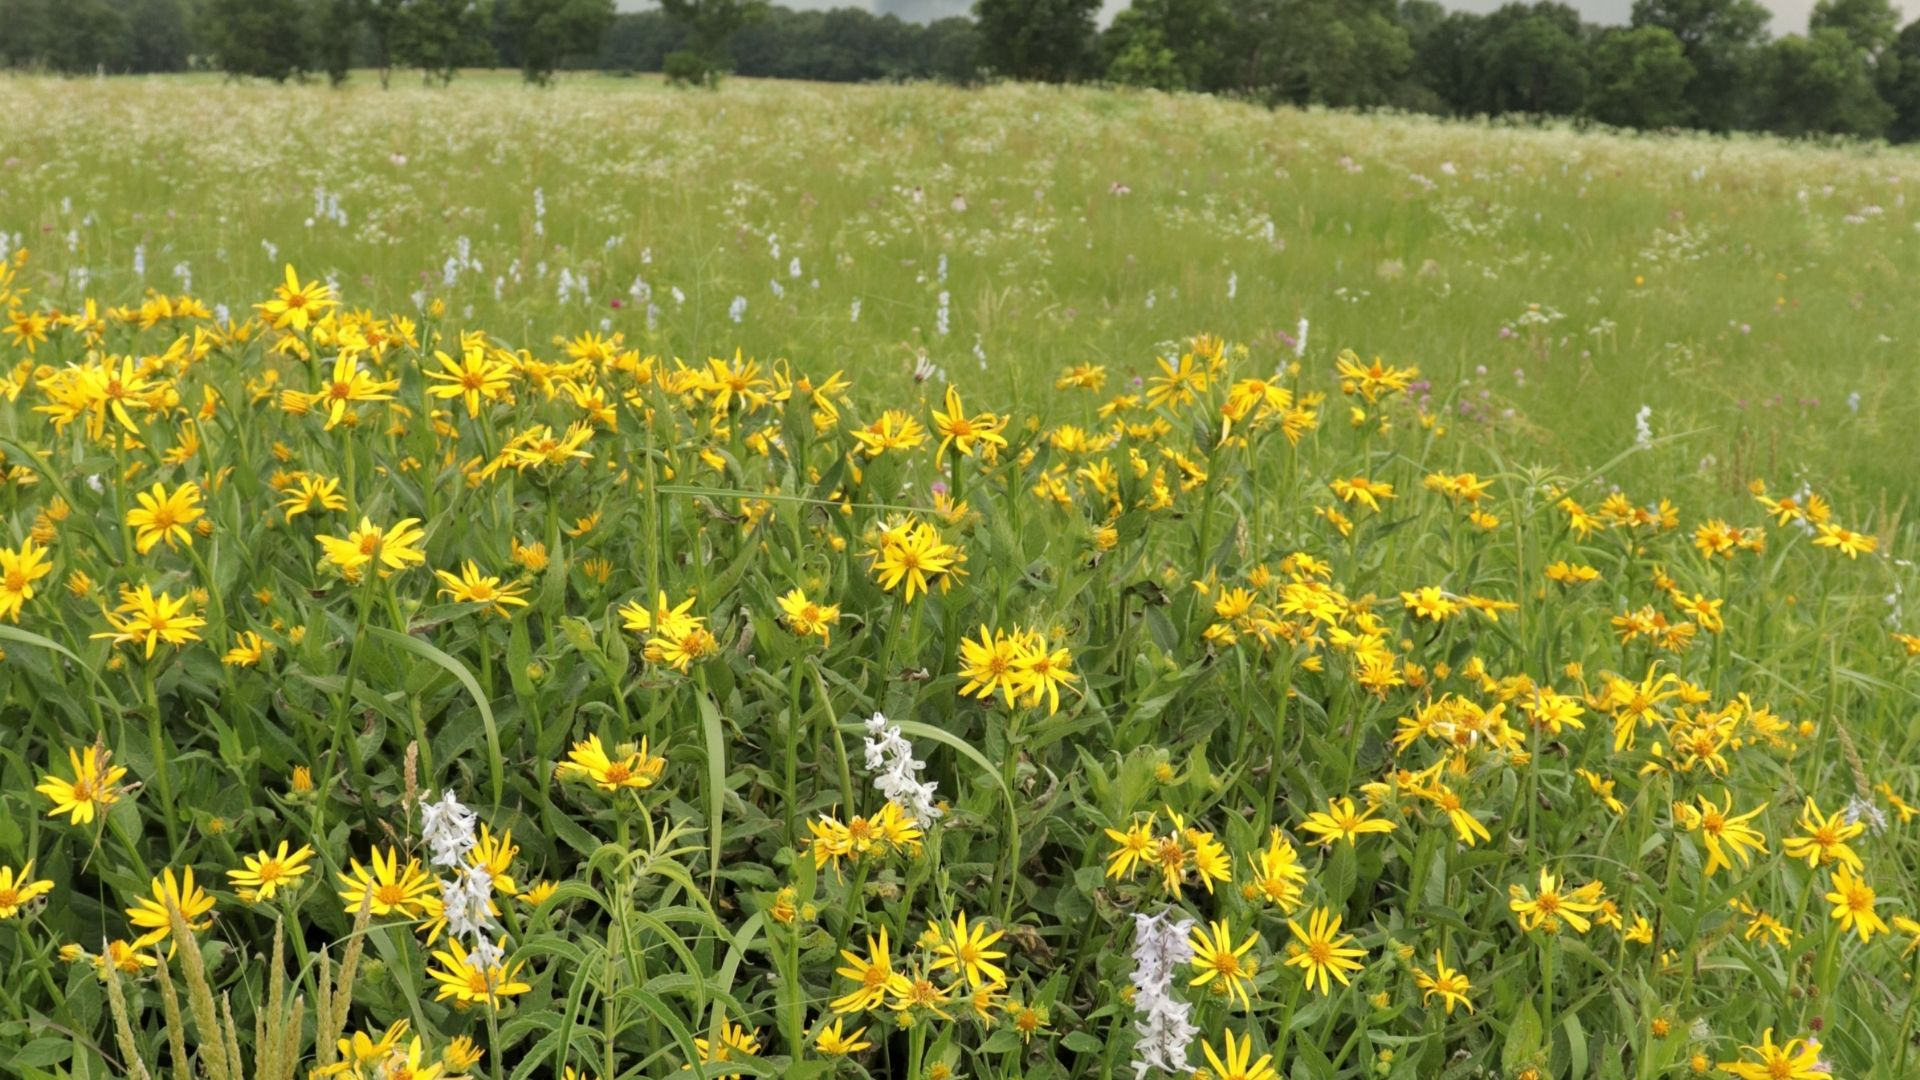 Green field with yellow and white flowers